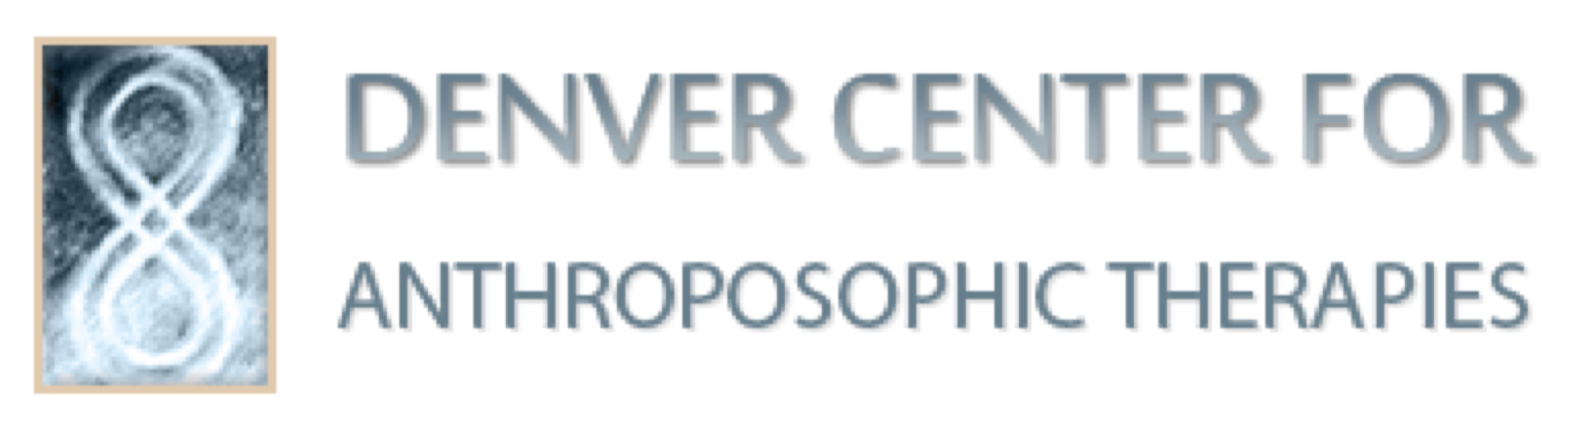 Denver Center for Anthroposophic Therapies